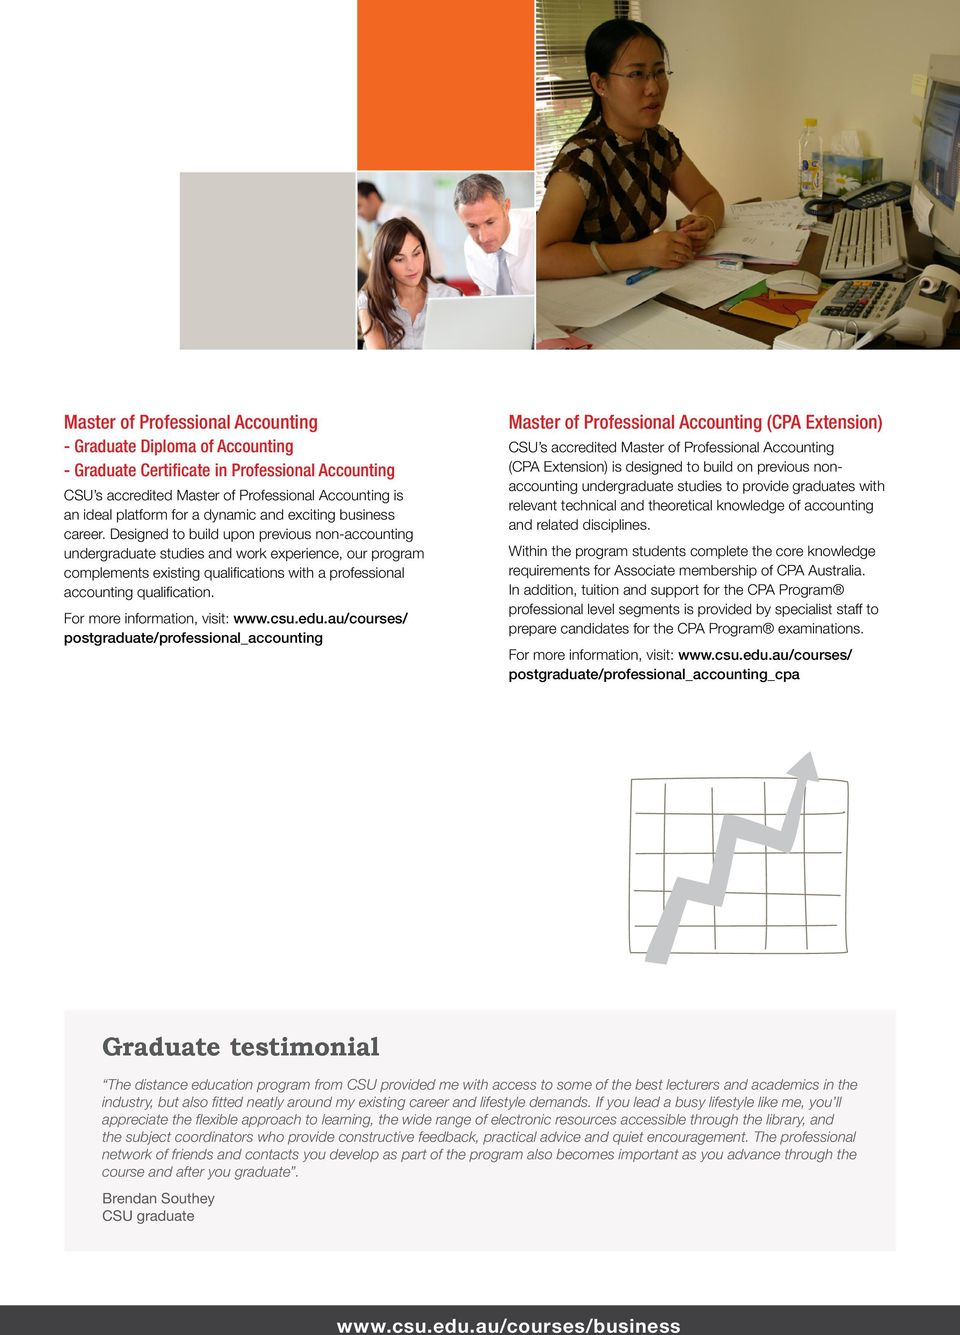 Designed to build upon previous non-accounting undergraduate studies and work experience, our program complements existing qualifications with a professional accounting qualification.